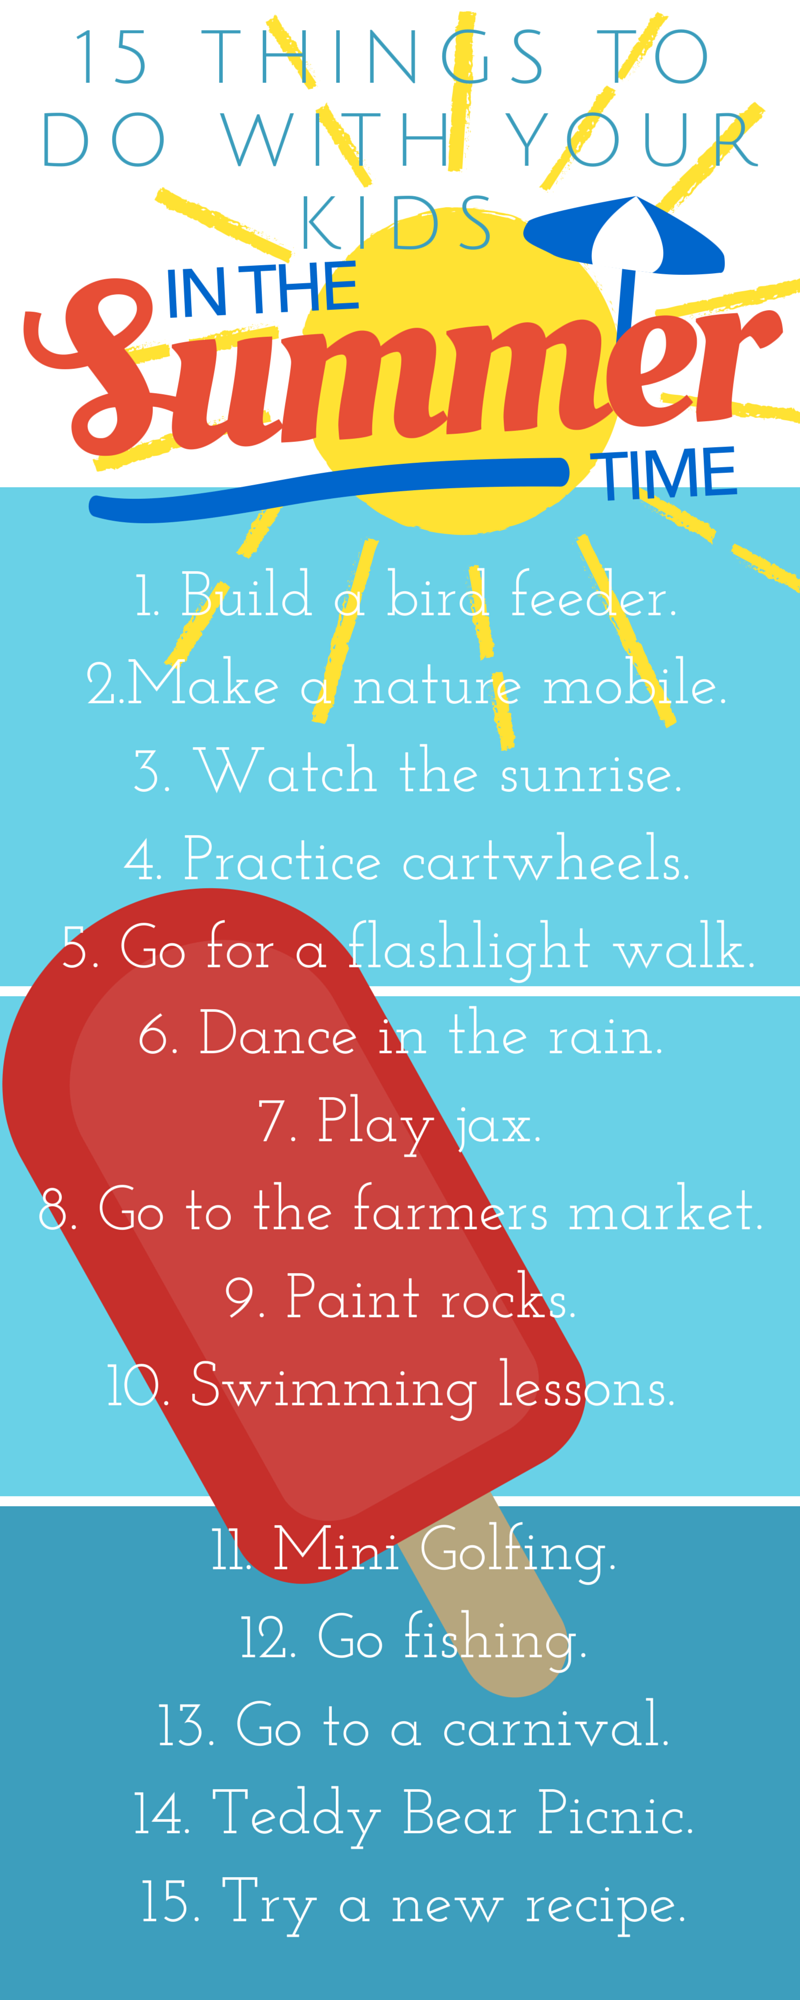 Things to do with your kids in the summer Part 3